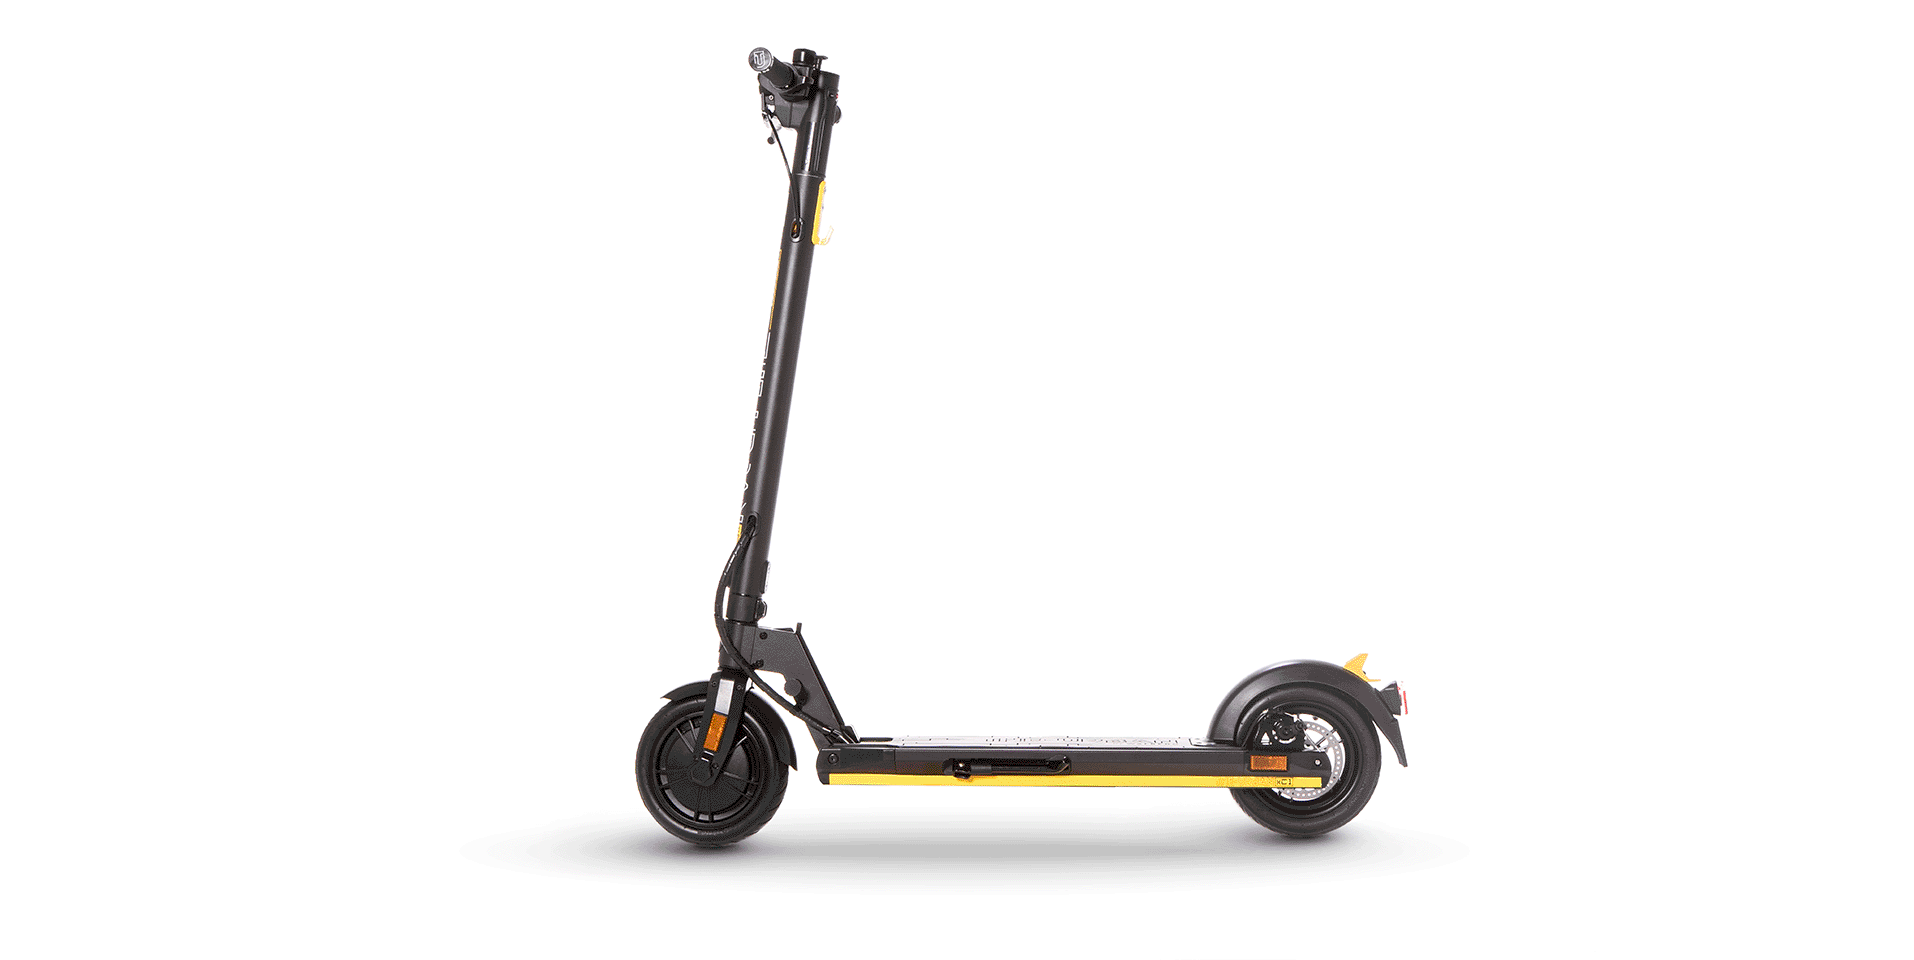 THE-URBAN xC1 e-scooter from ebike.me.uk